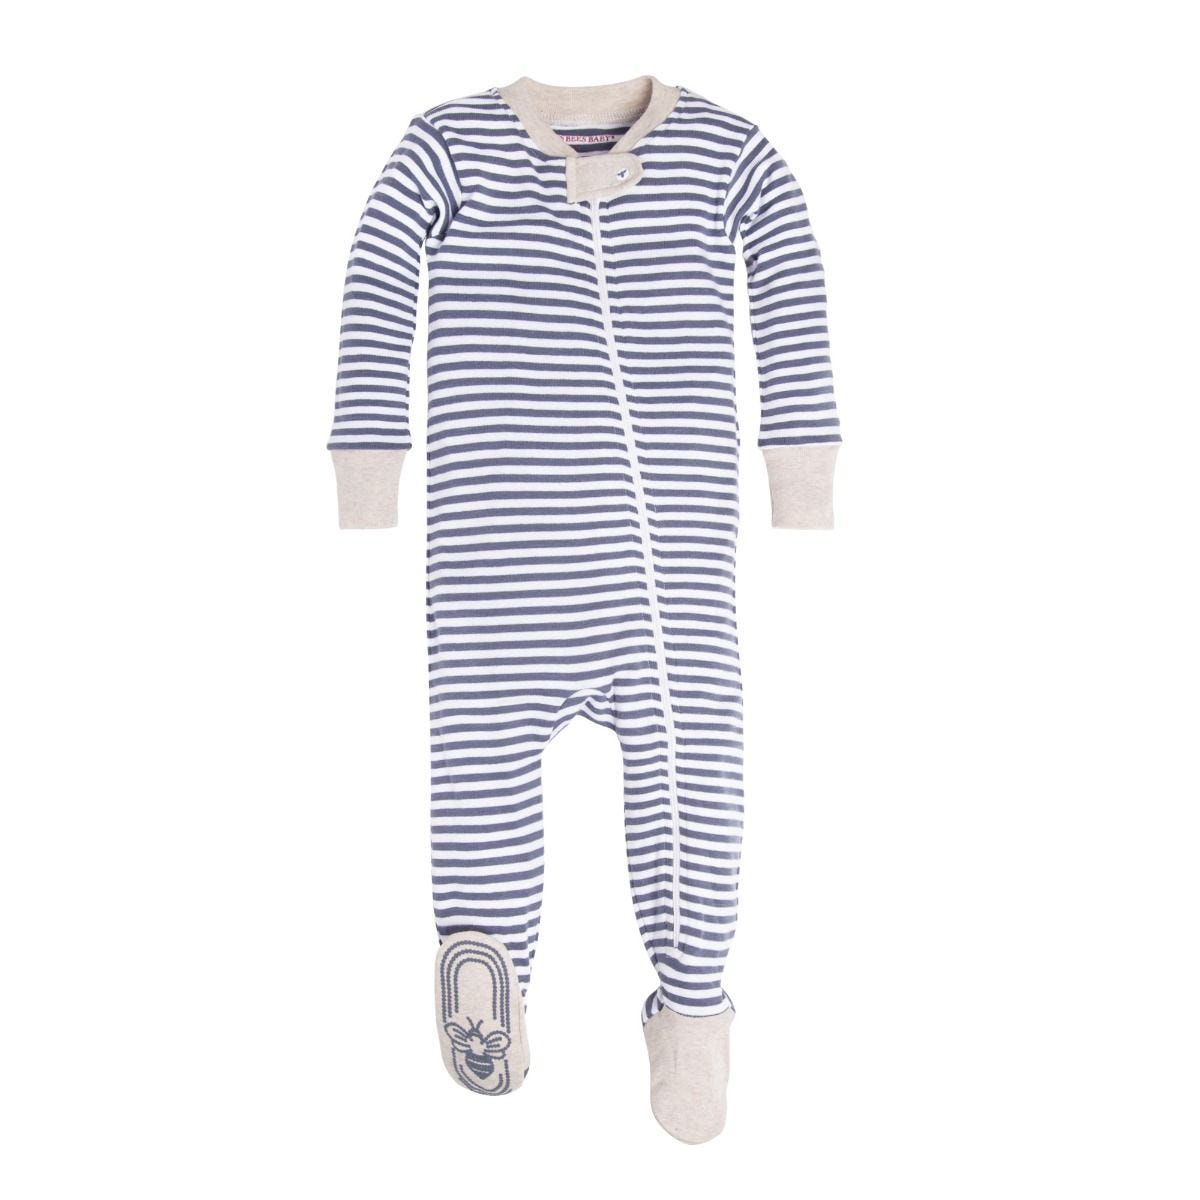 0af89fdc93 Stripe Organic Baby Zip Up Footed Pajamas